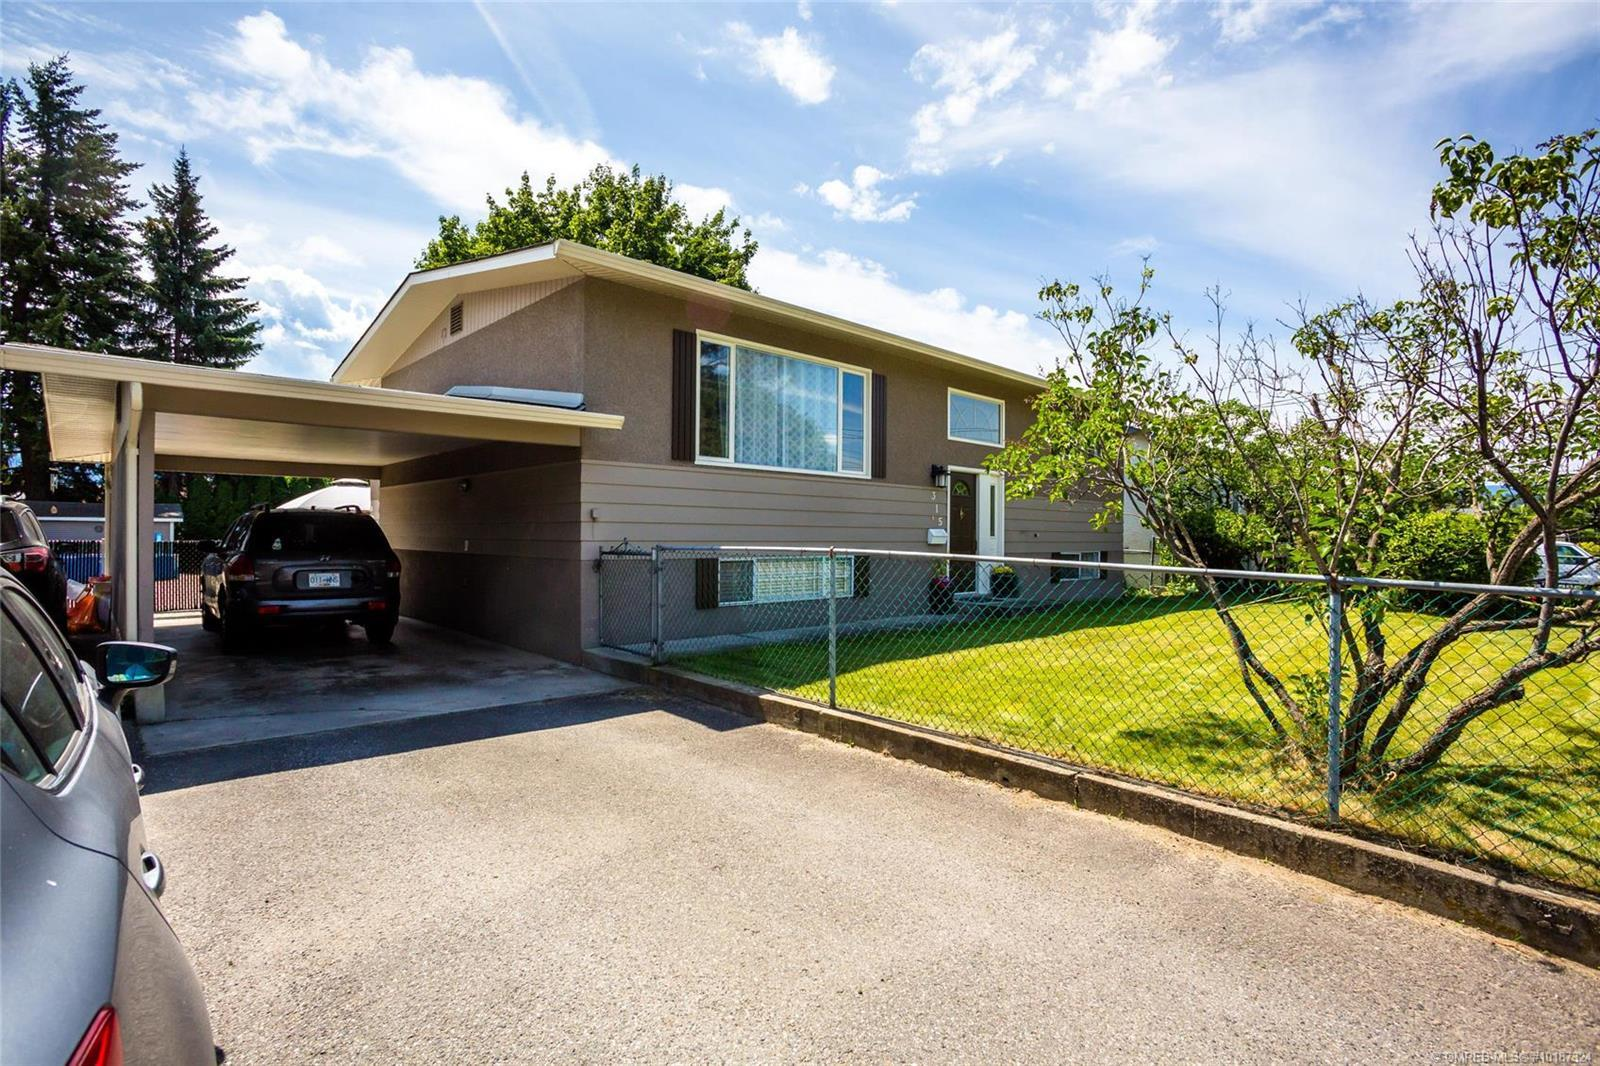 Removed: 315 Mccurdy Road, Kelowna, BC - Removed on 2019-10-02 22:21:19